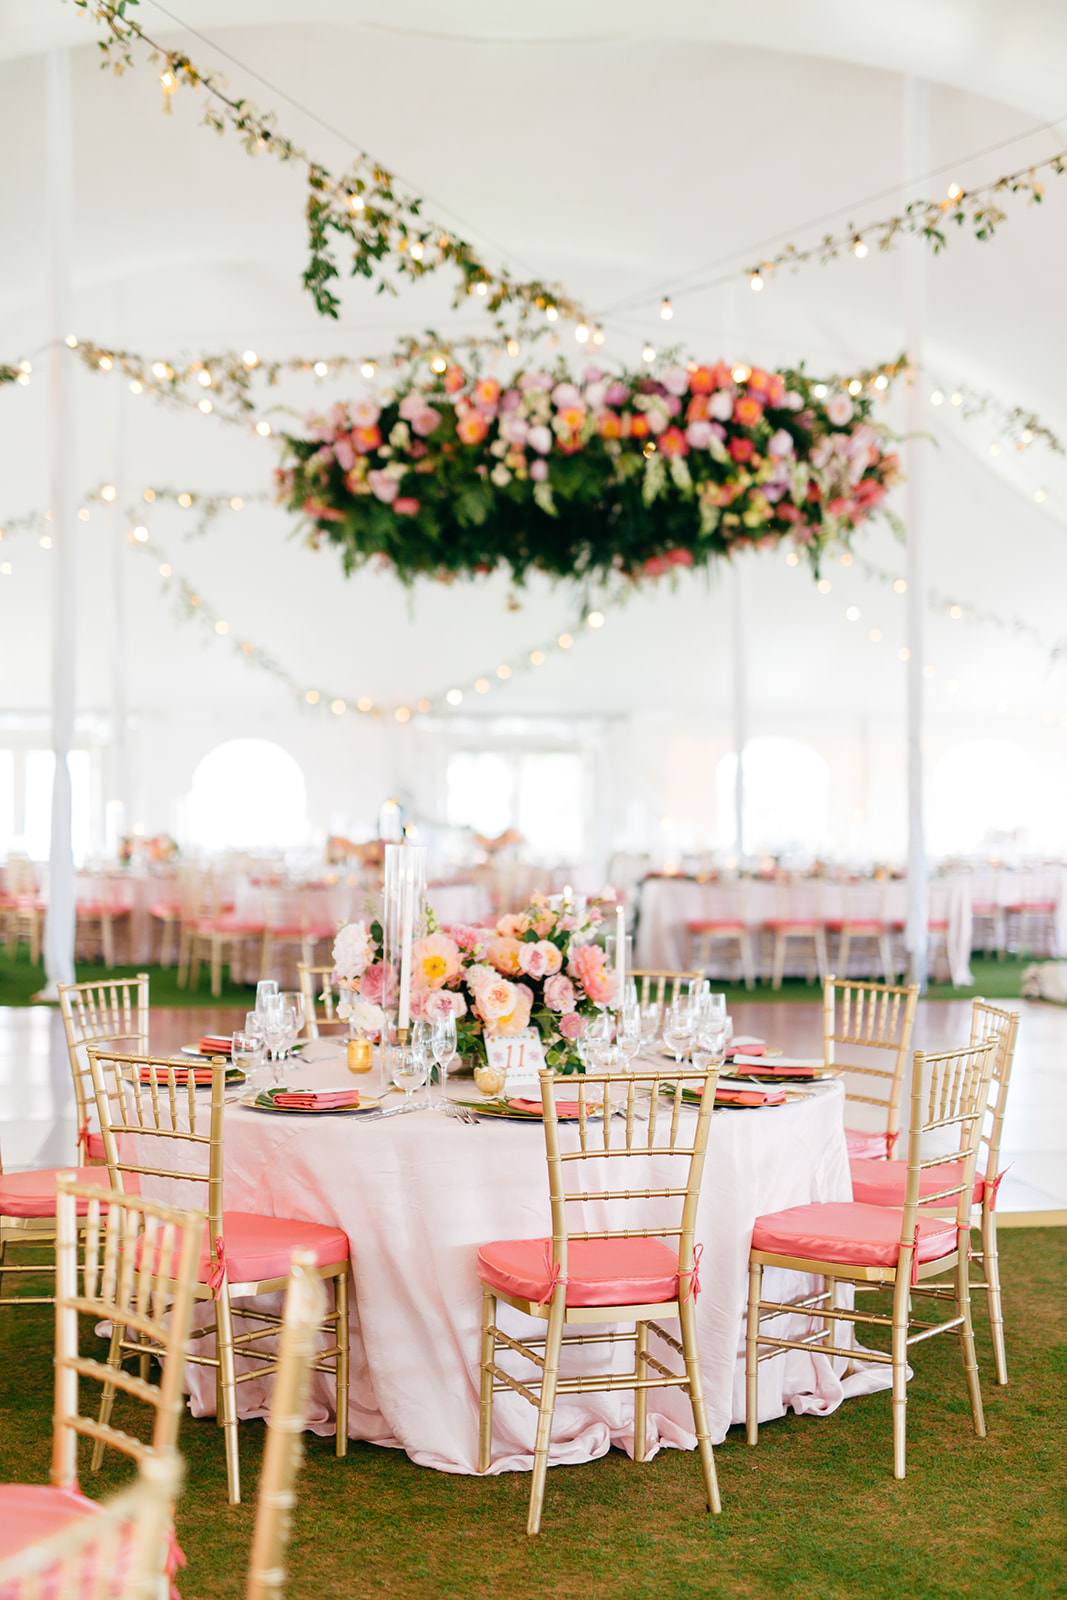 Elegant Tropical Tent Wedding Reception Decor, Tables with White Linens, Gold Chiavari Chairs with Pink Cushions, Hanging Floral Draping   Tampa Bay Wedding Planner NK Weddings